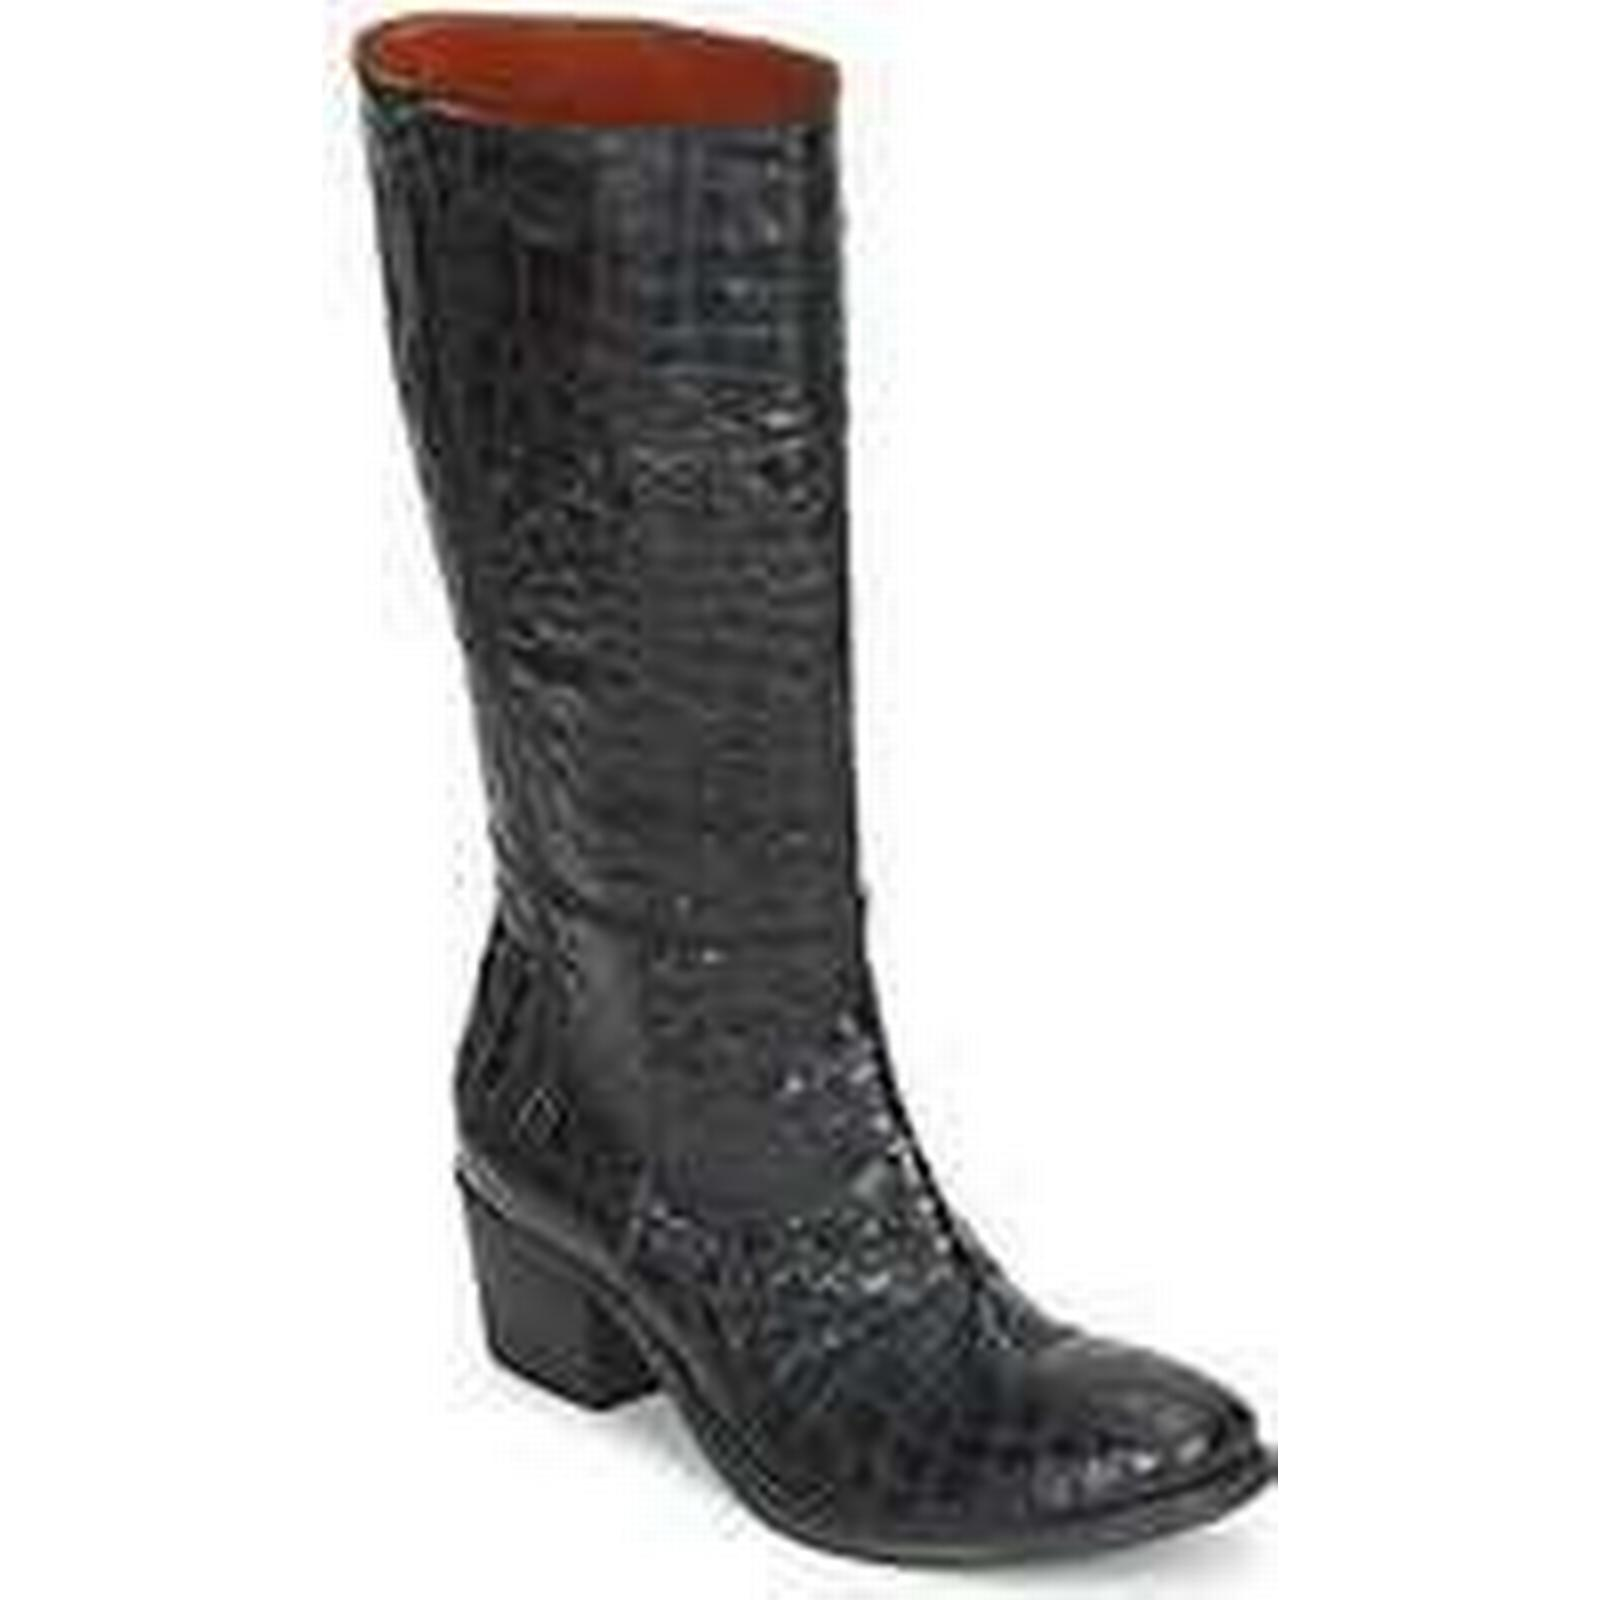 Spartoo.co.uk Fru.it ZULOU women's High Black Boots in Black High d2cd77